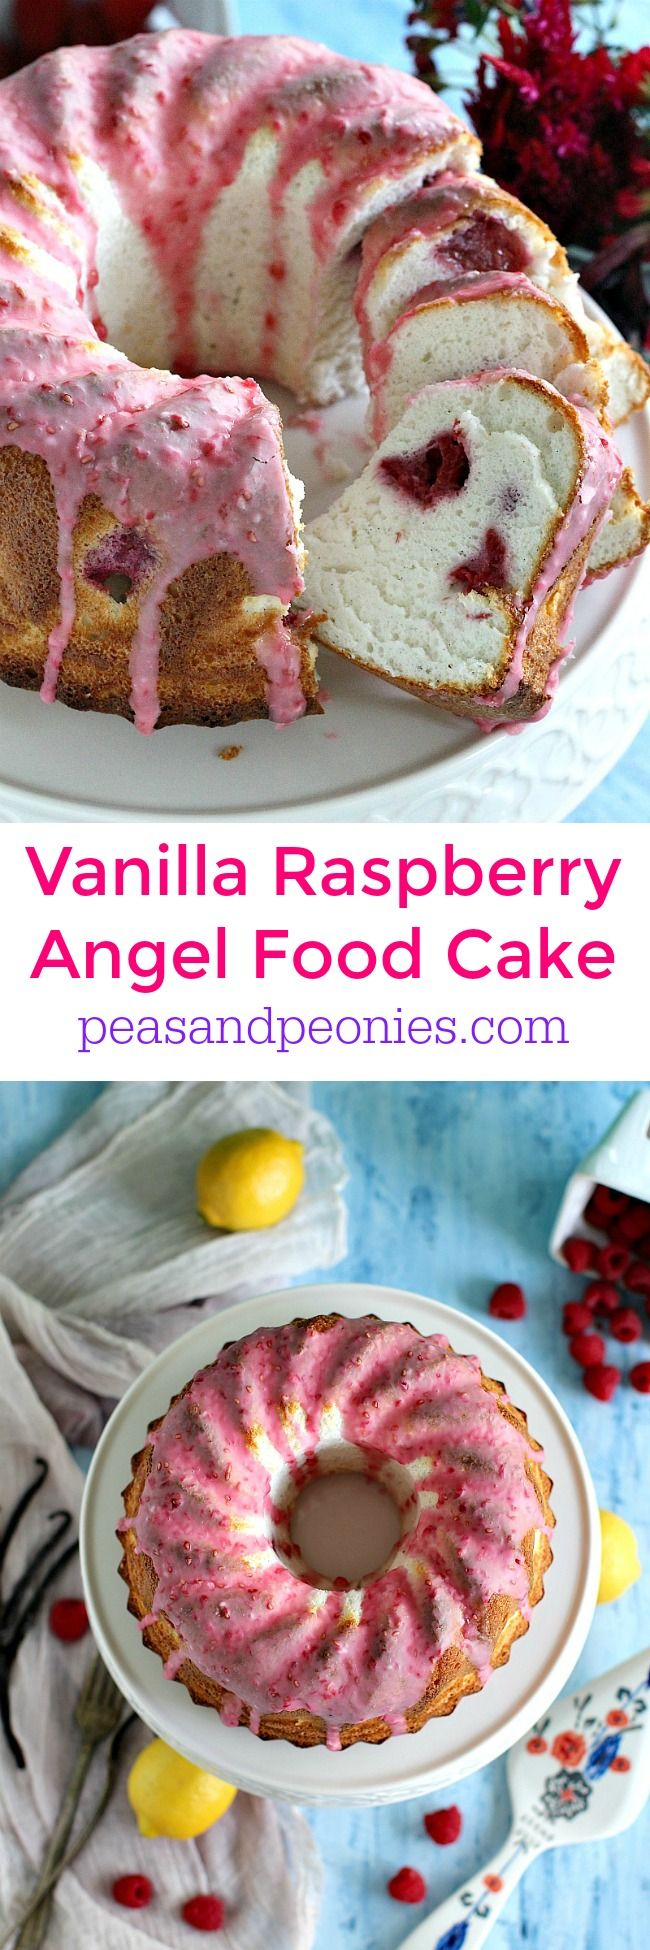 512 best scrumptious cake cupcake recipes images on pinterest beautiful vanilla bean raspberry angel food cake is tender and soft perfectly finished with a forumfinder Images